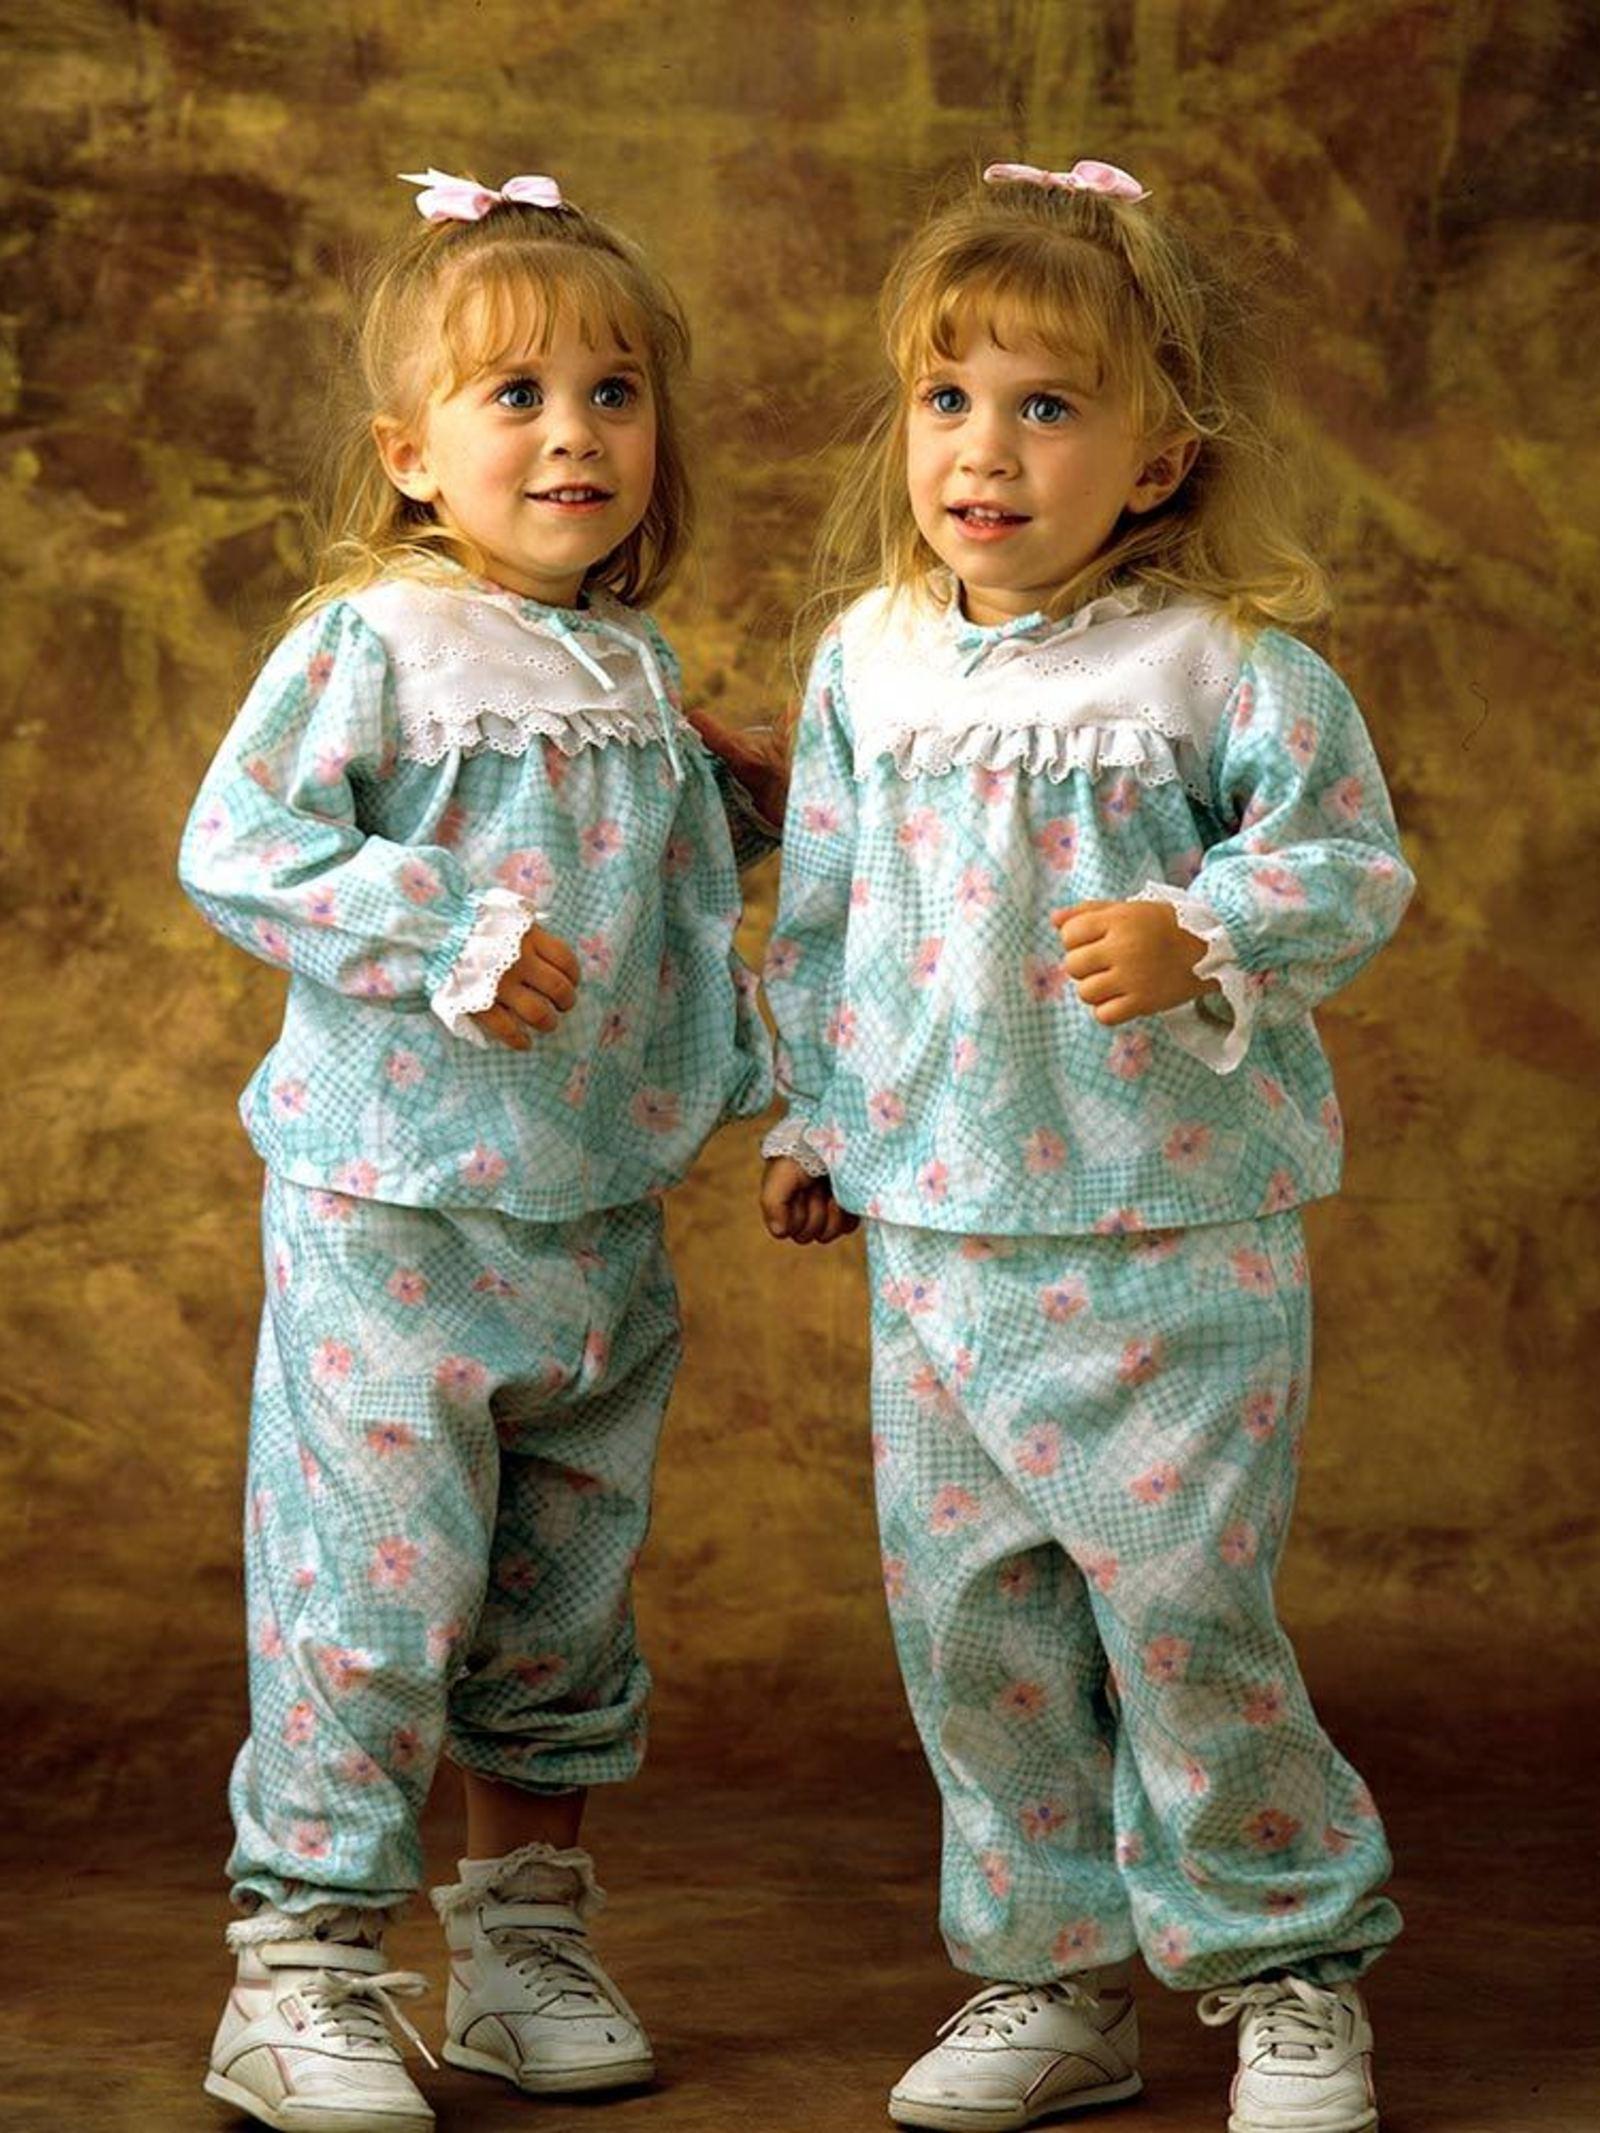 Theres Going To Be A Mary Kate and Ashley Museum